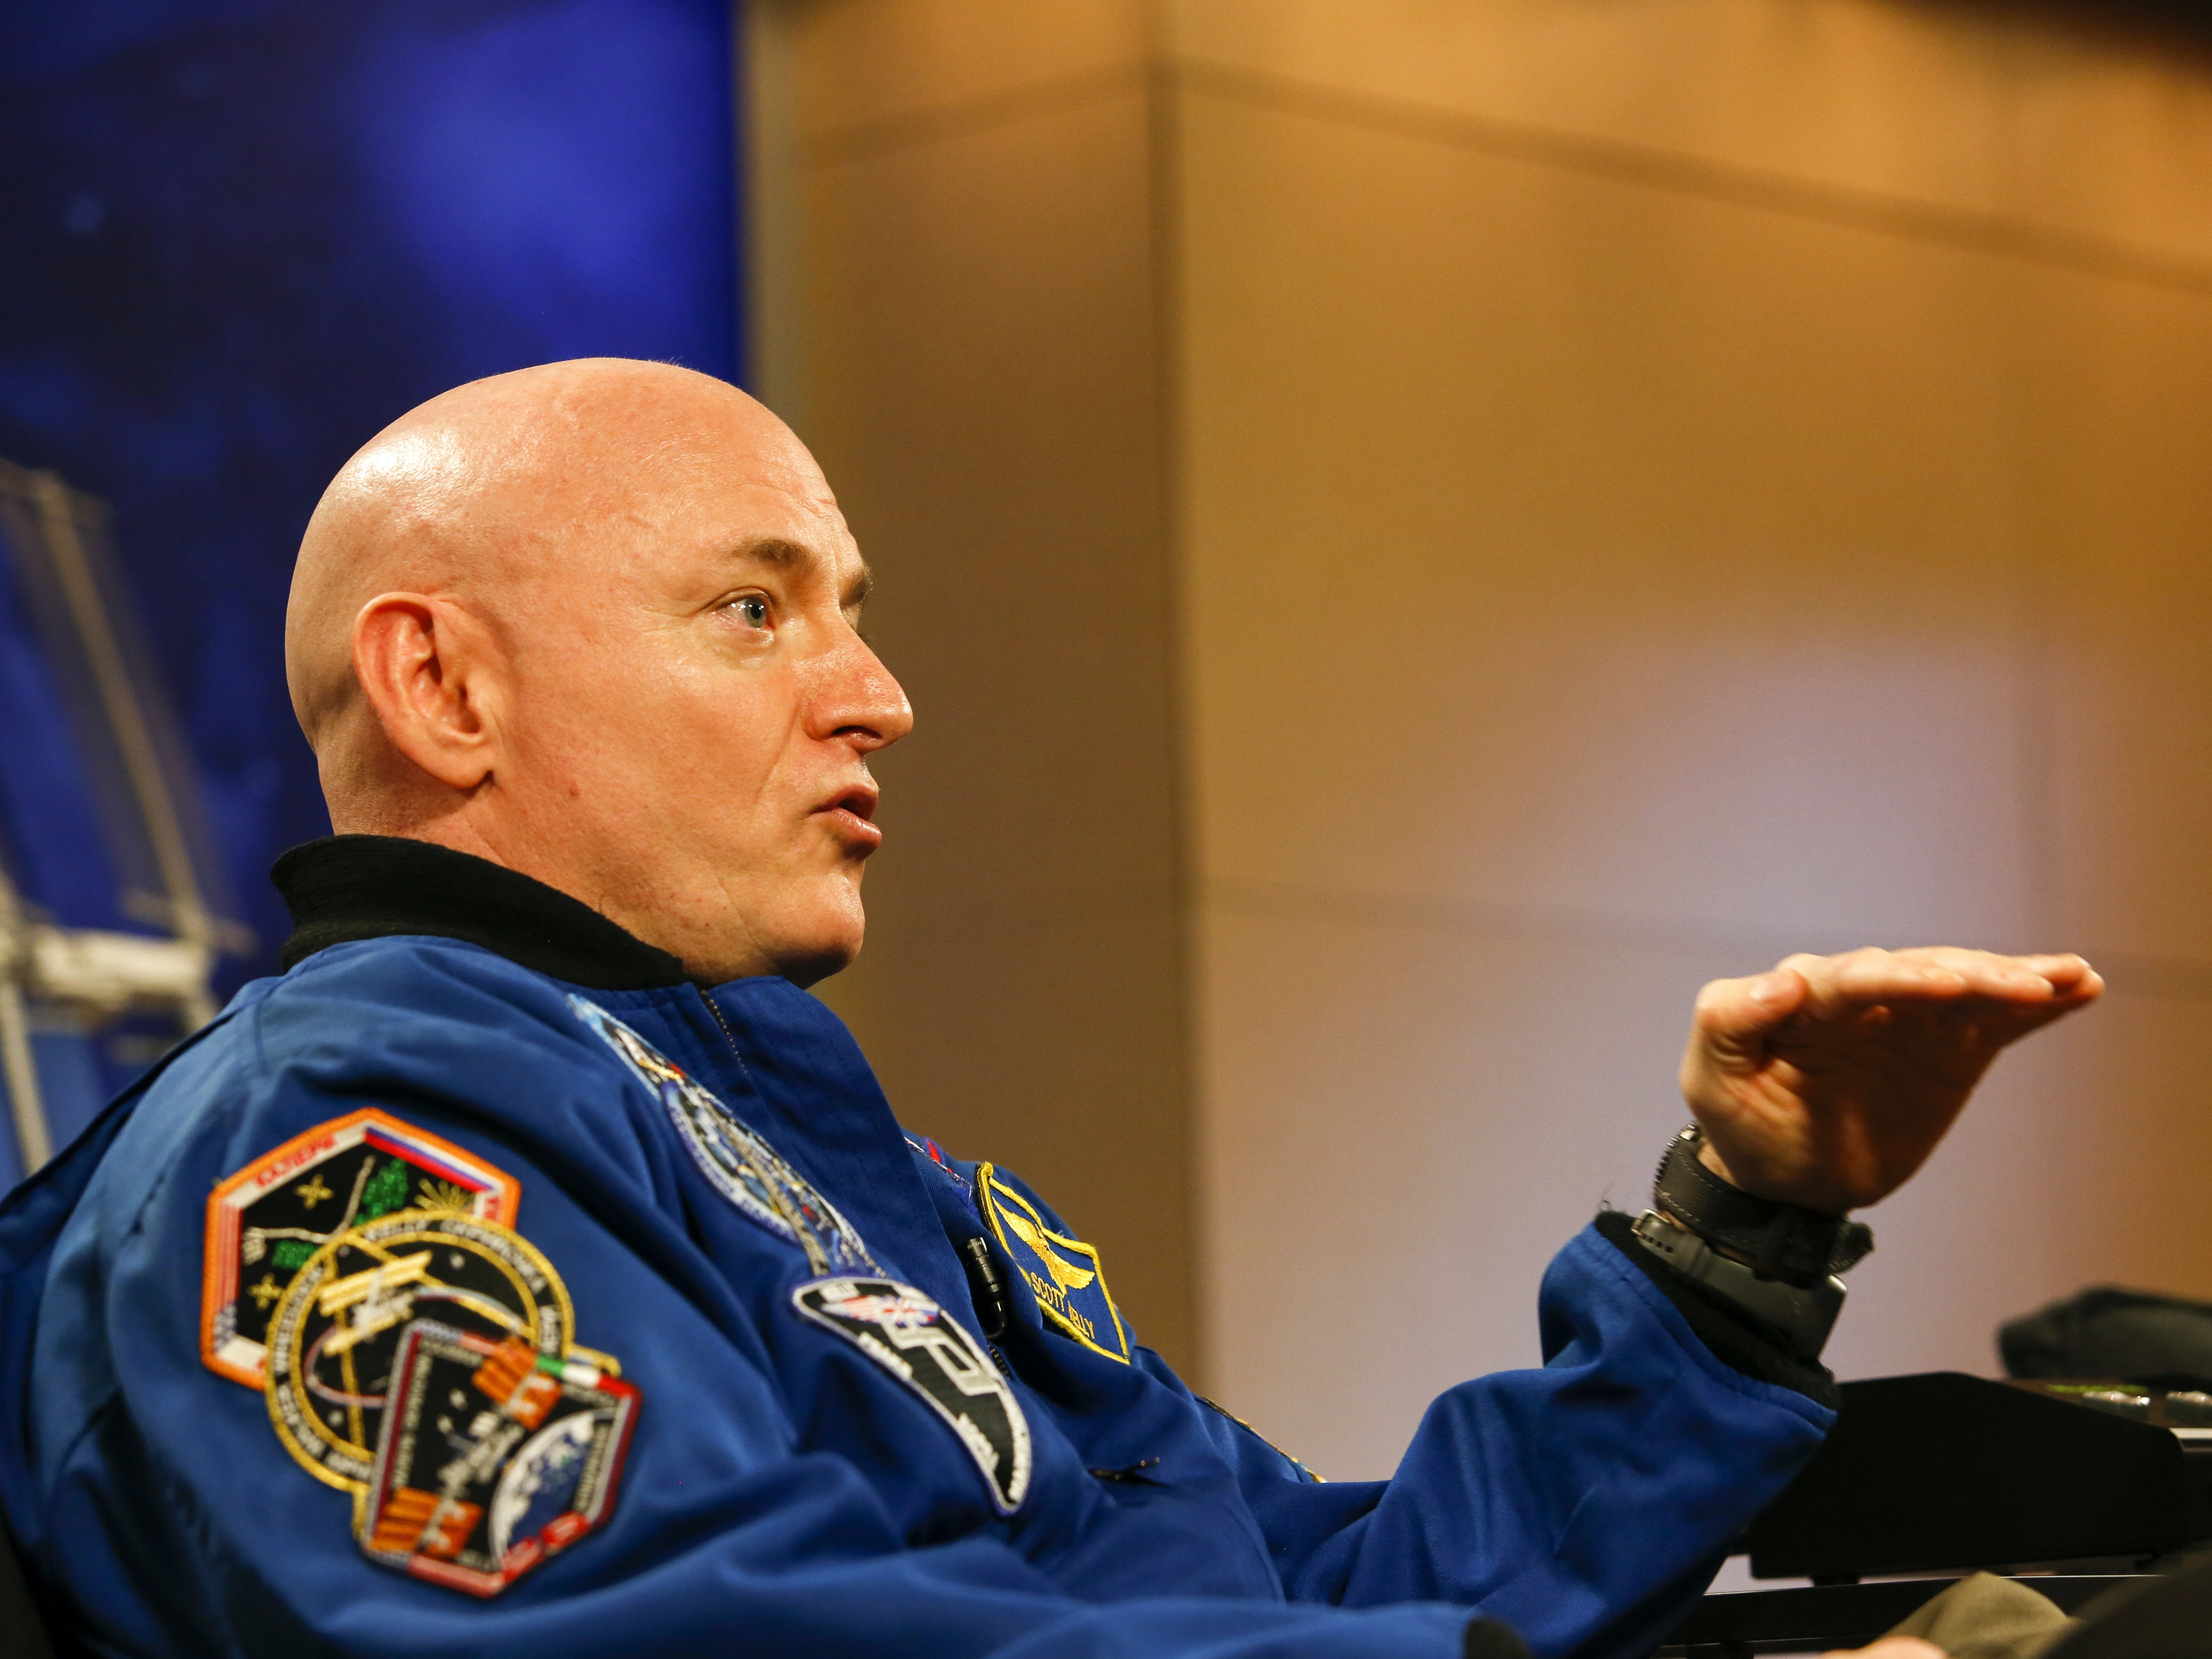 Scott Kelly Gets a Movie Deal about His Year in Space